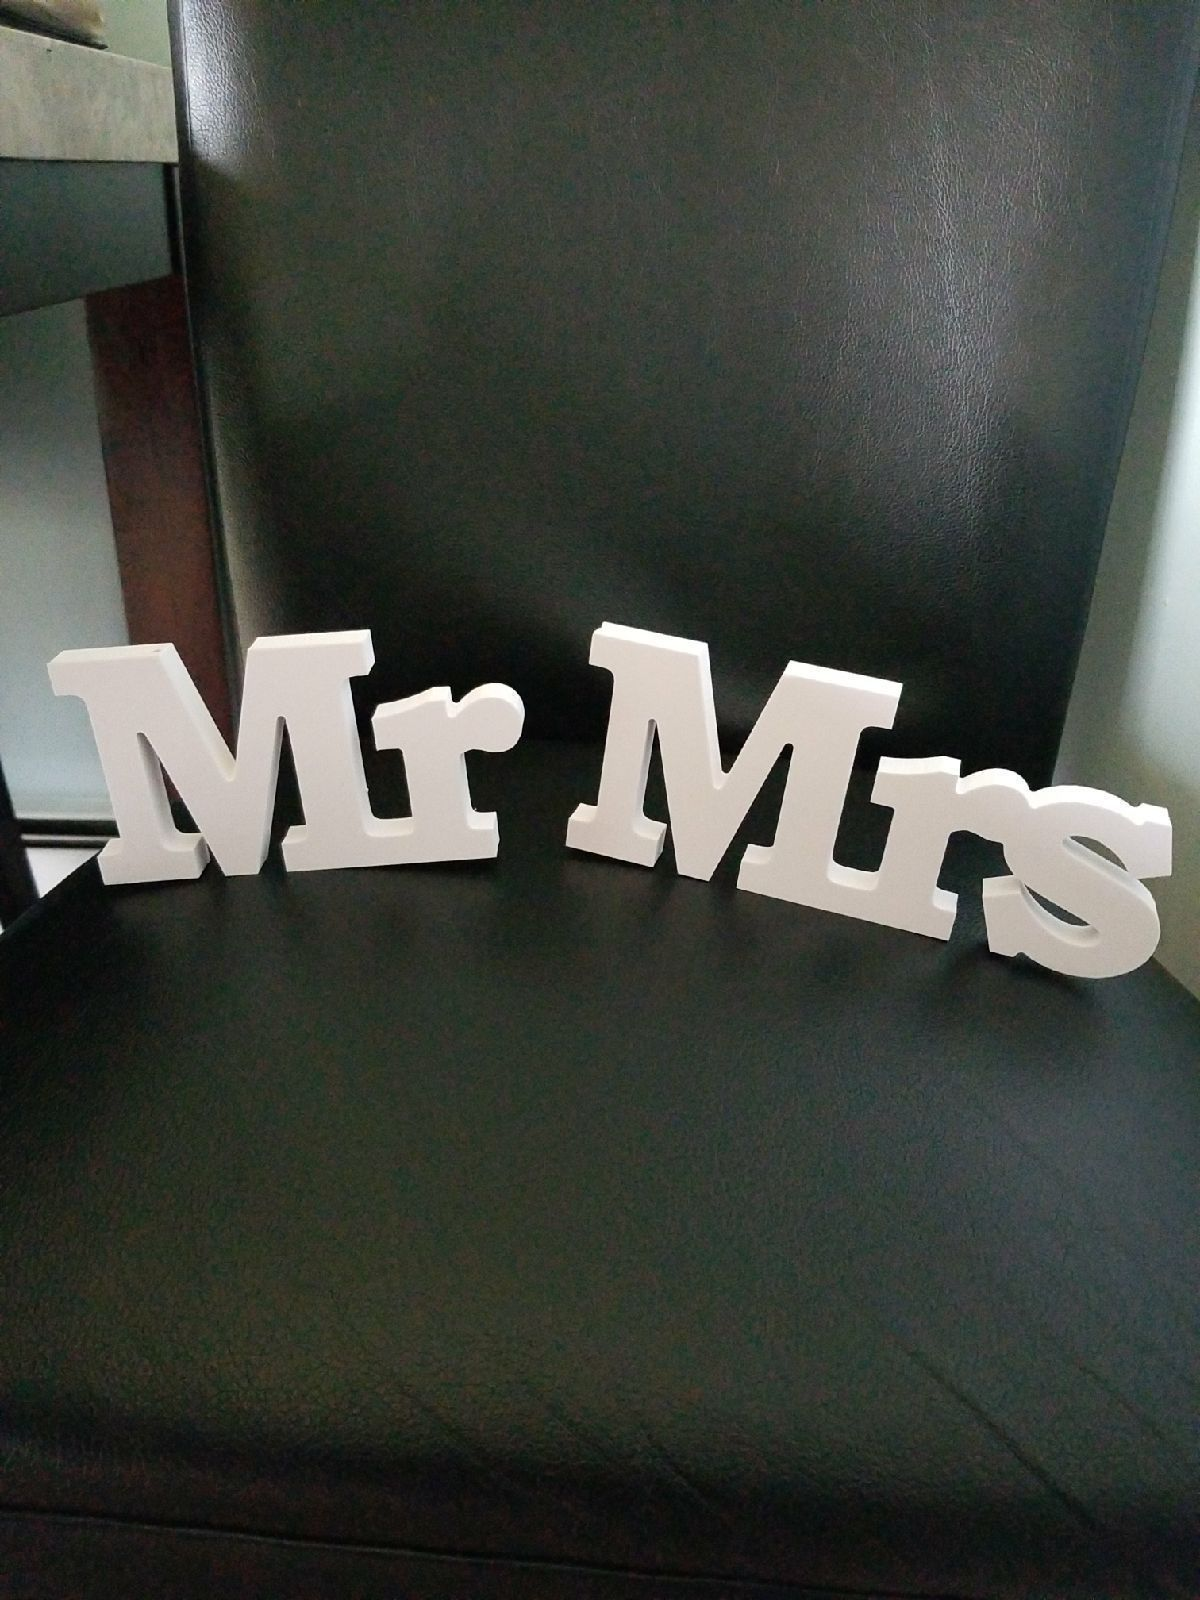 Mr Mrs. Wood signs.